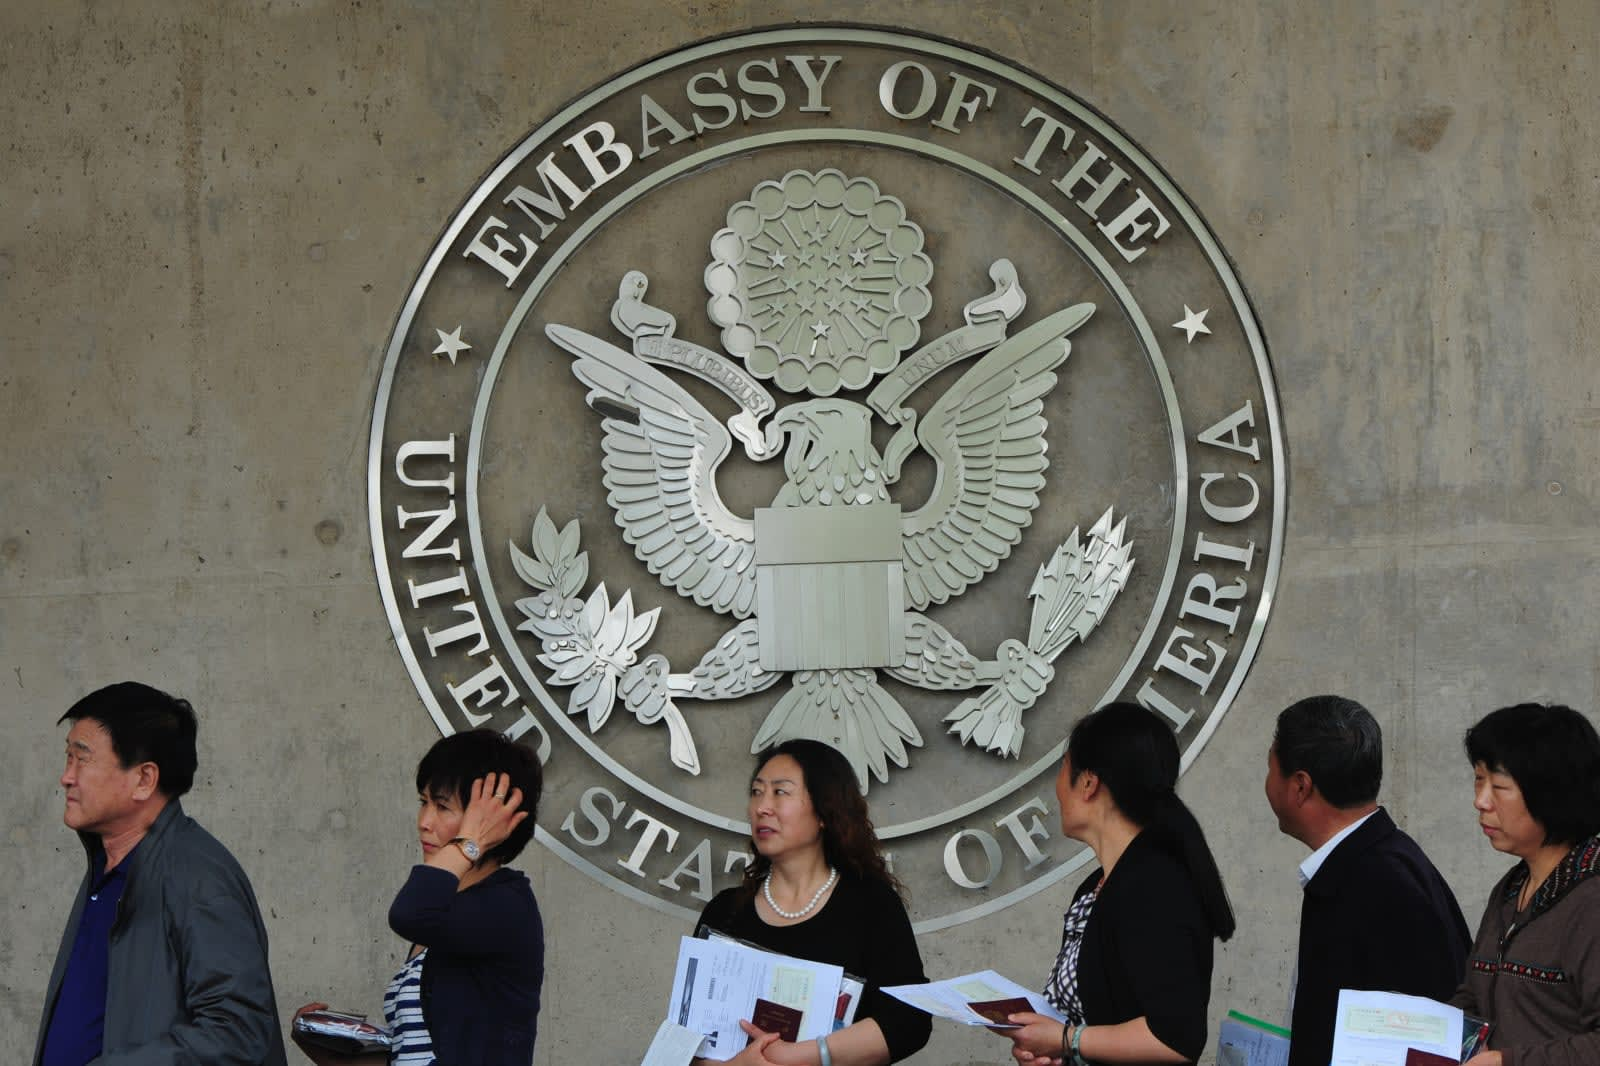 US Requires Social Media Details on Most Visa Applications